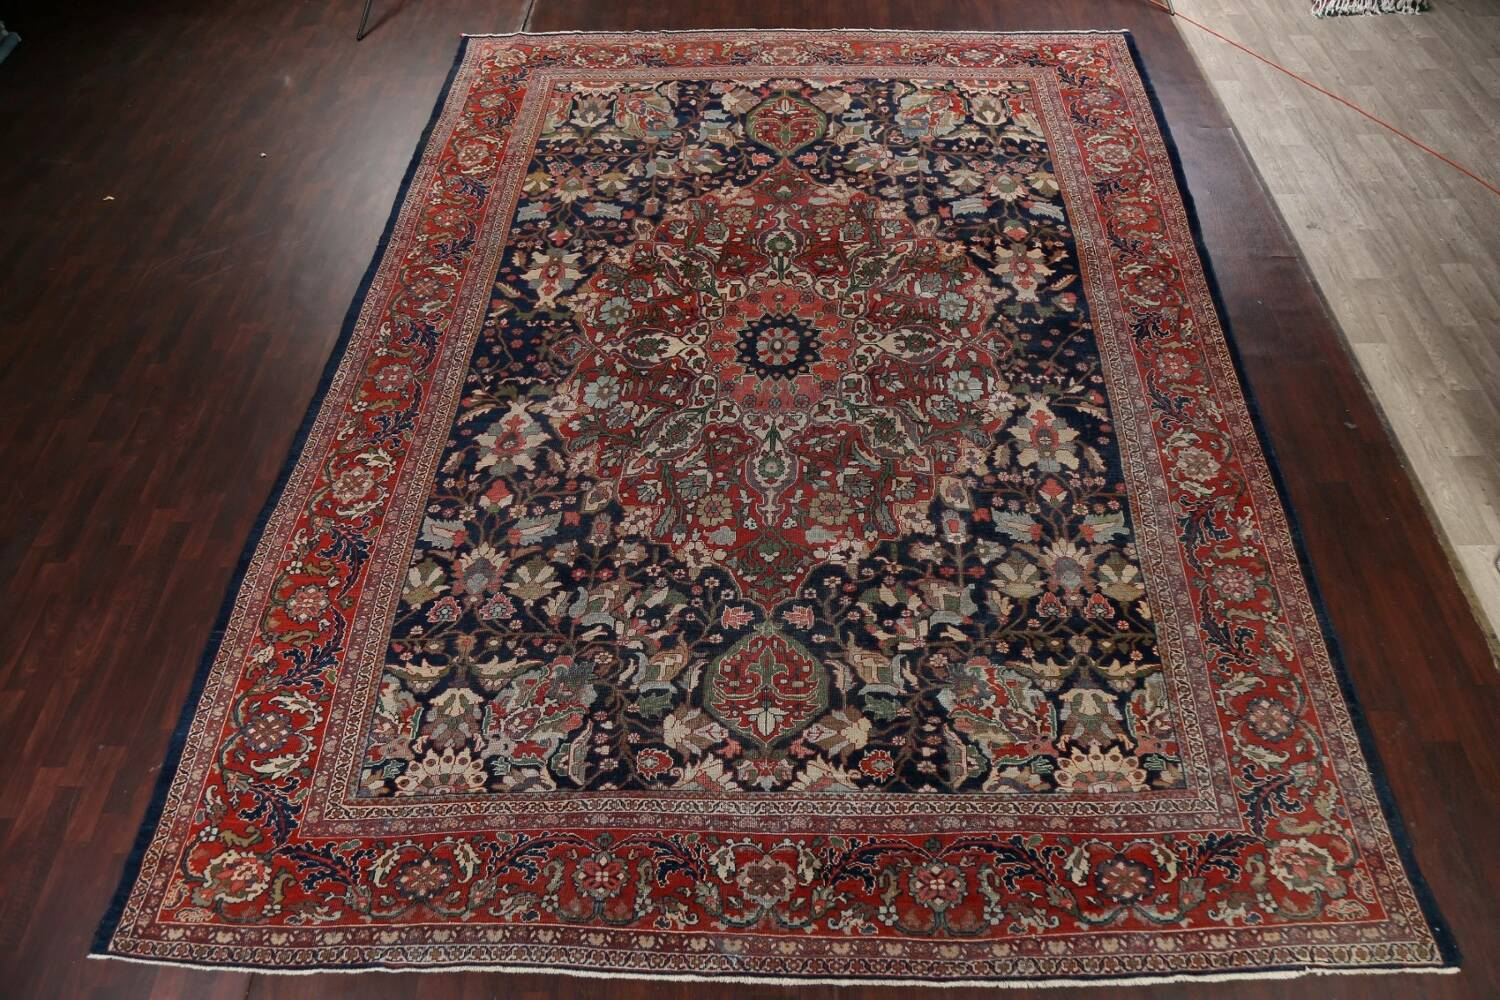 Pre-1900 Antique Vegetable Dye Sultanabad Persian Rug 12x16 image 16